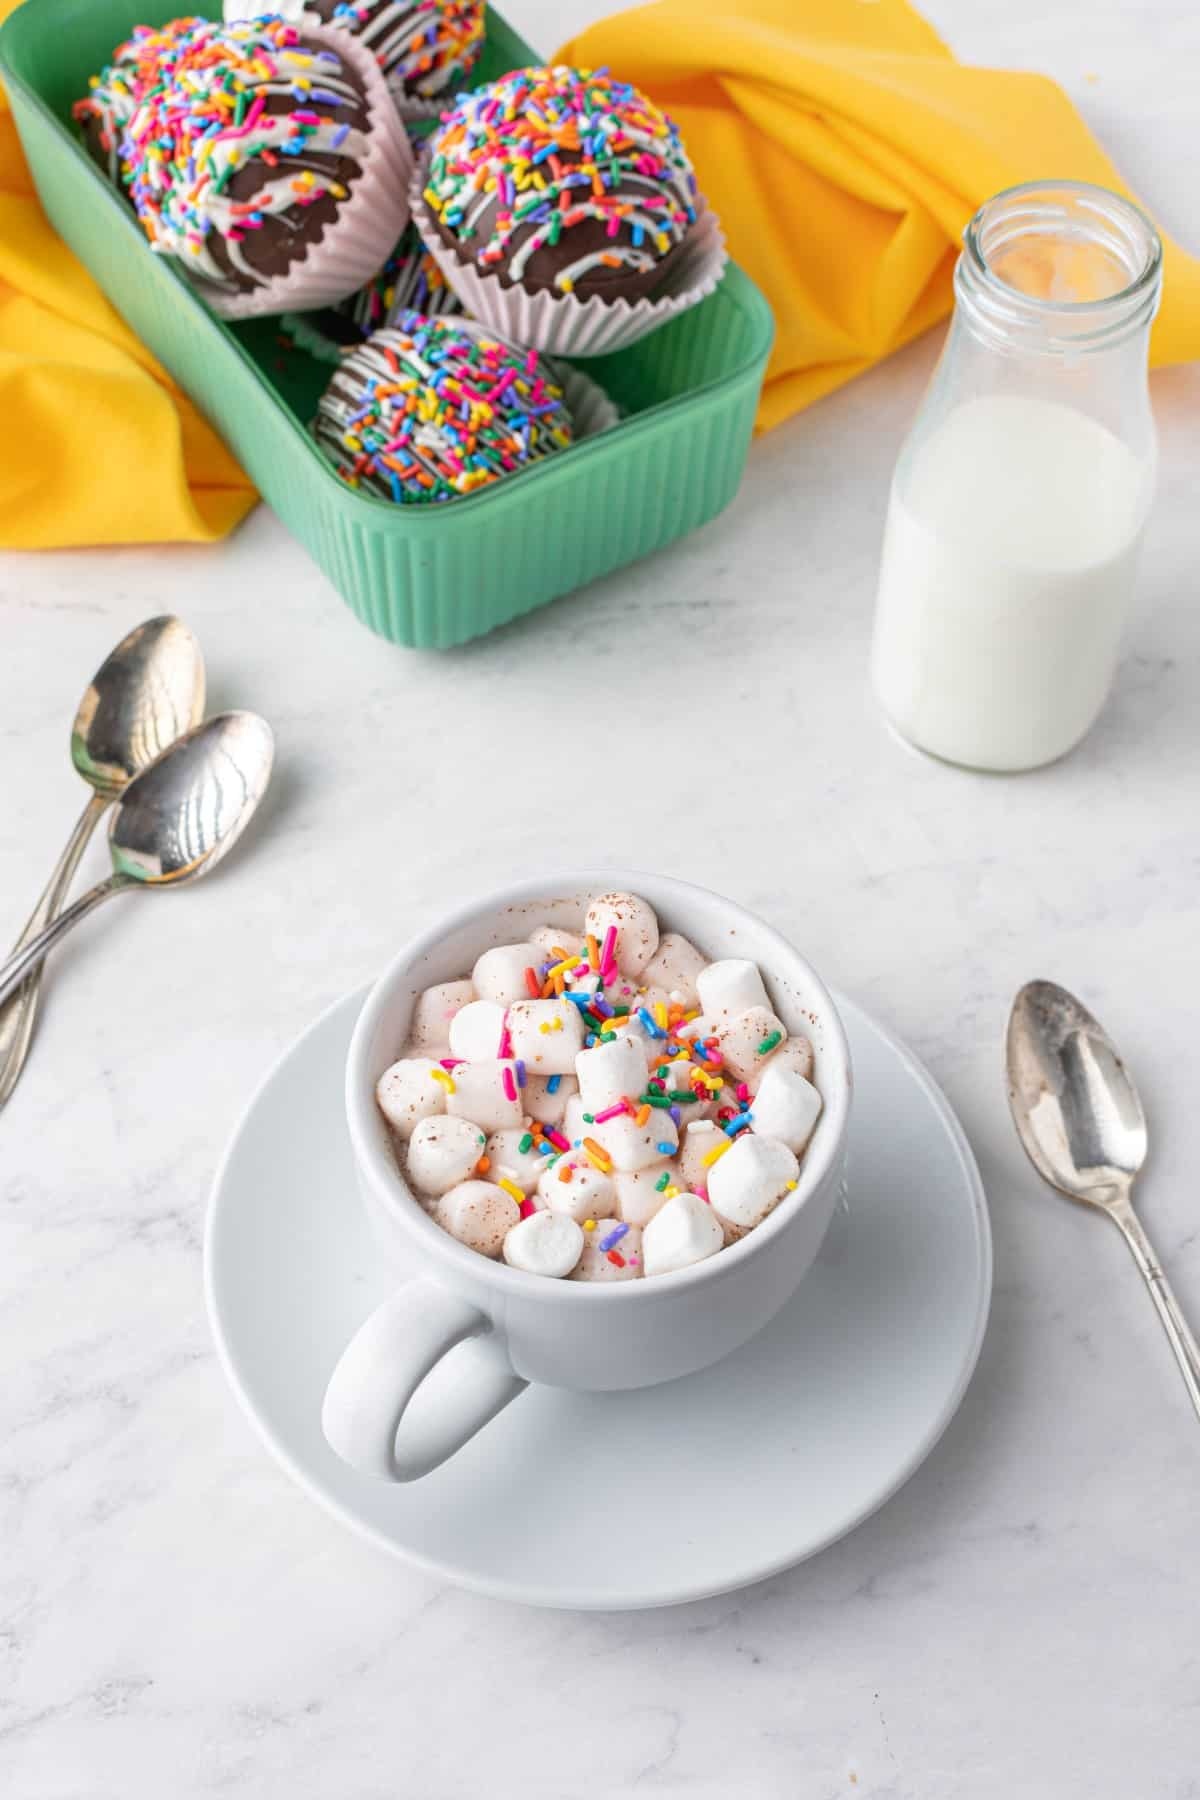 Cup of hot chocolate in a white mug and saucer with lots of mini marshmallows and sprinkles.